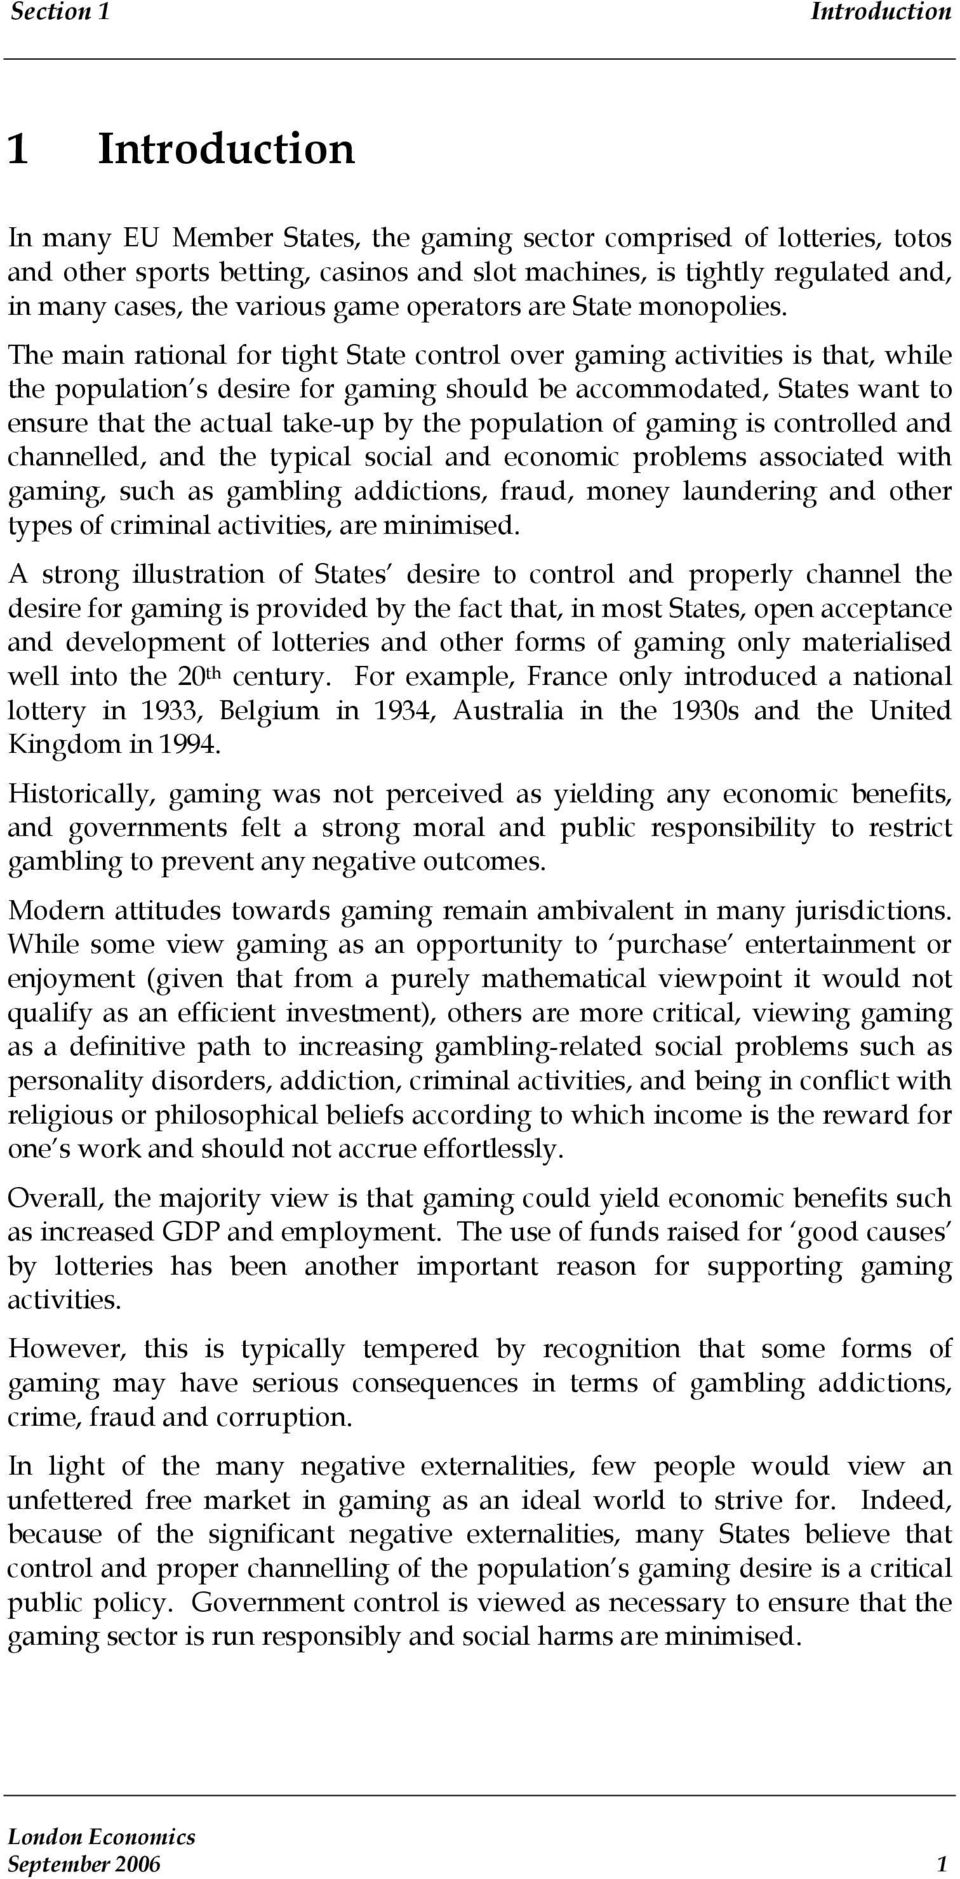 The main rational for tight State control over gaming activities is that, while the population s desire for gaming should be accommodated, States want to ensure that the actual take-up by the